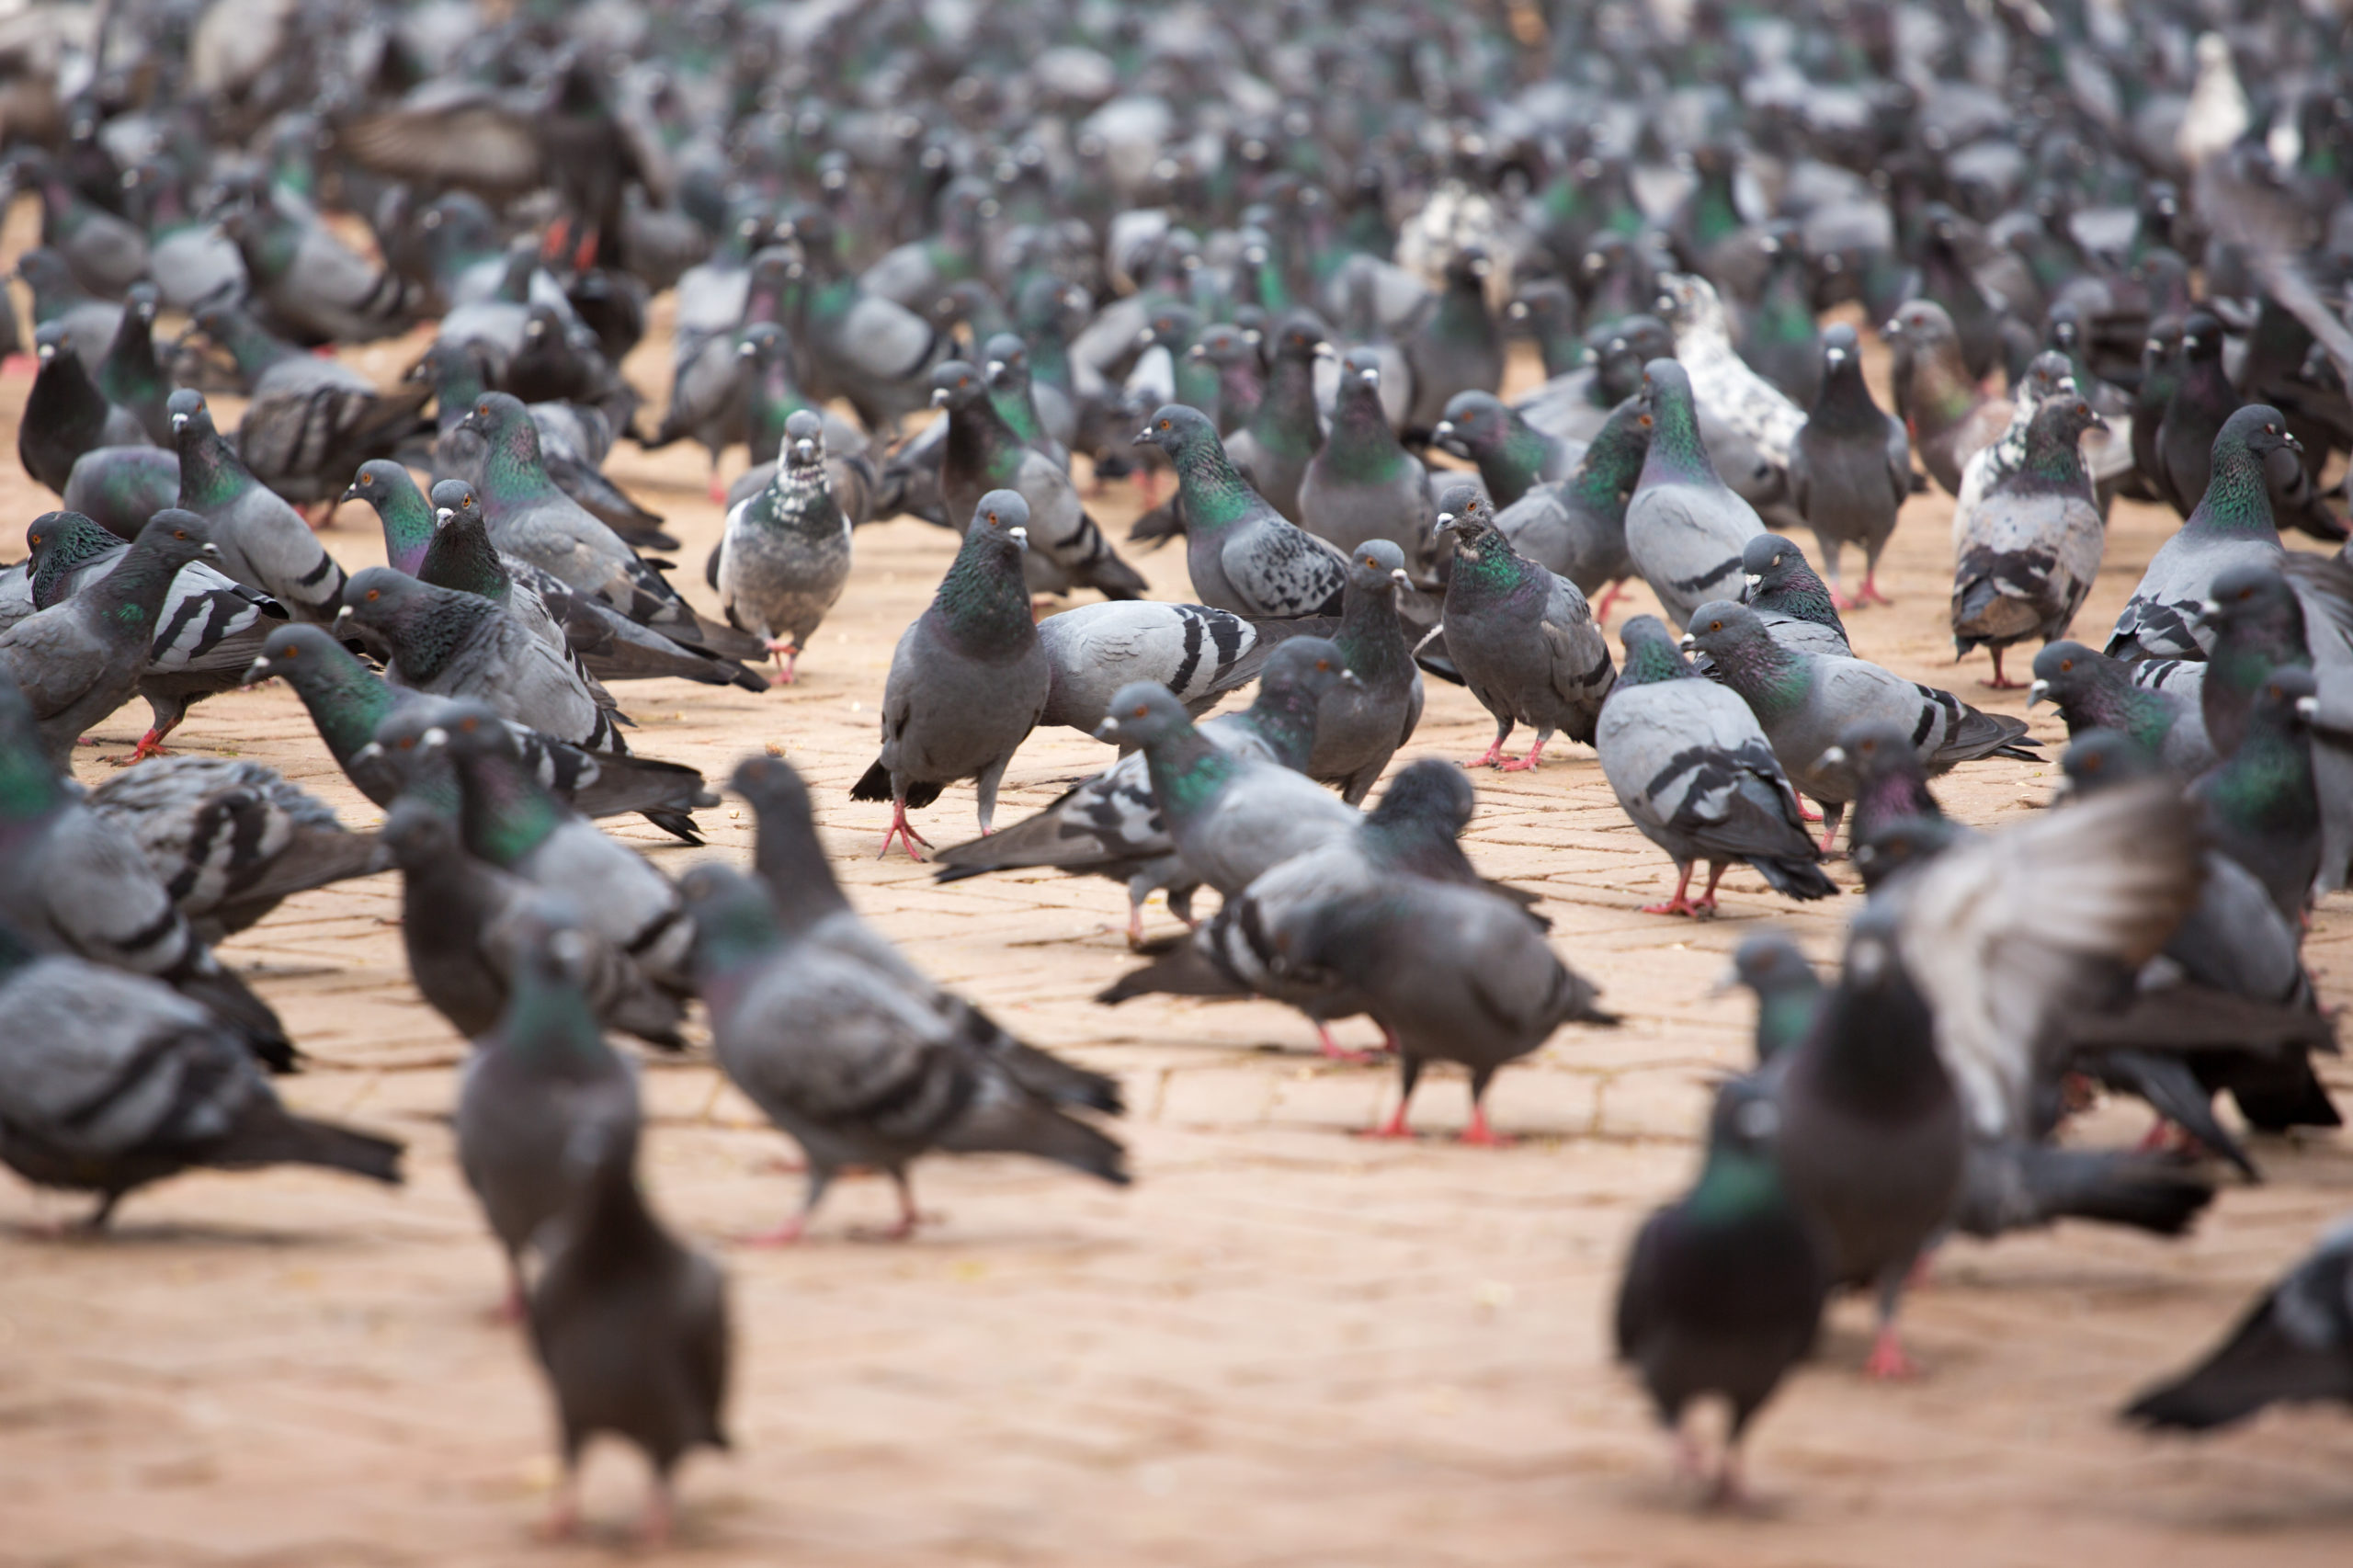 Image of a large flock of pigeons in a city